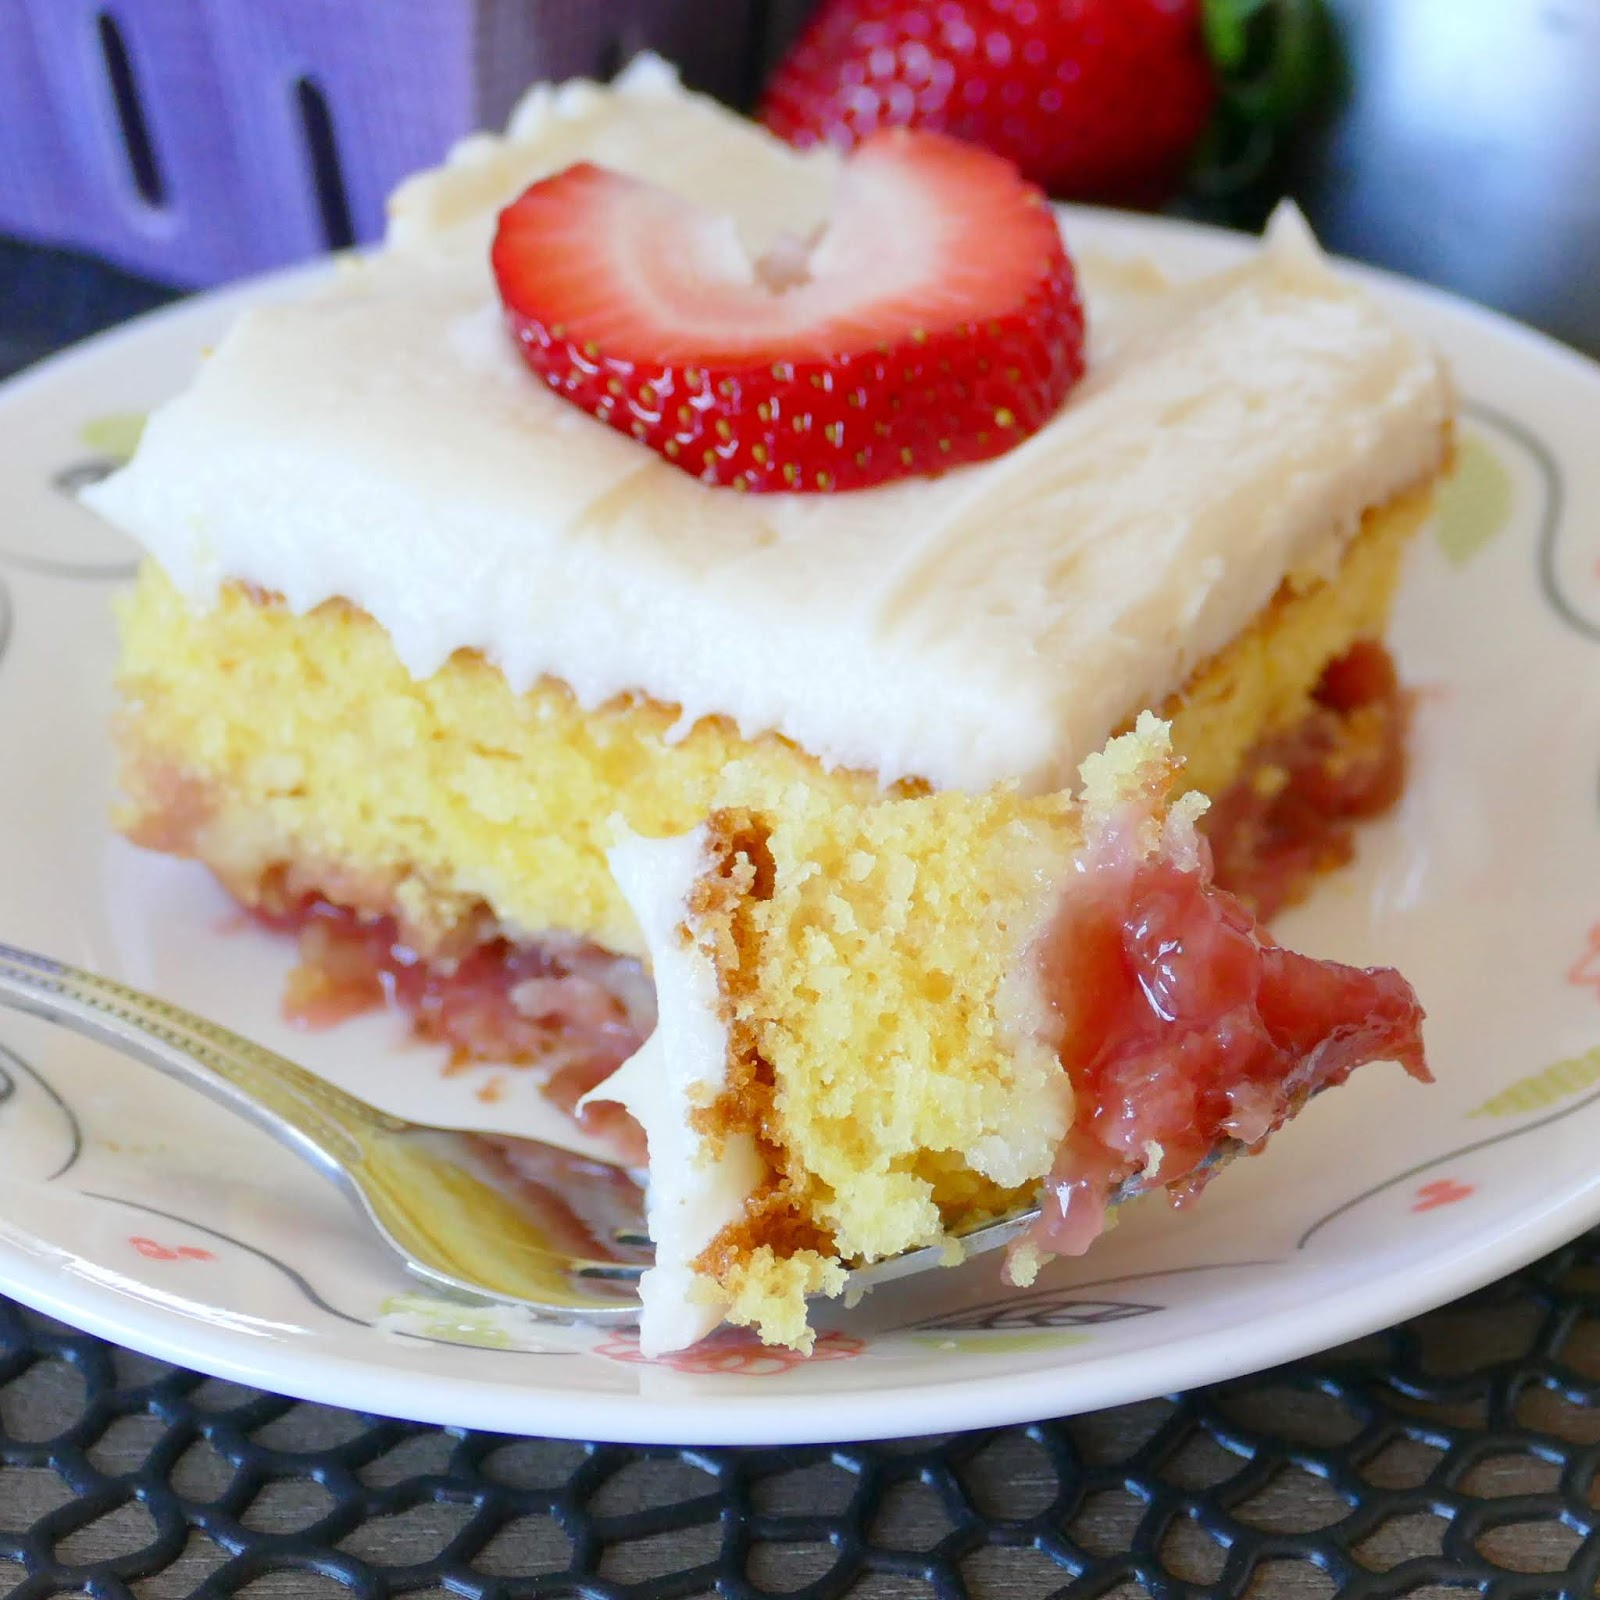 This spring and summer dessert is wonderful for any occasion. The rhubarb and strawberry layer is delicious with the cake and homemade buttercream frosting! Use fresh or frozen rhubarb!